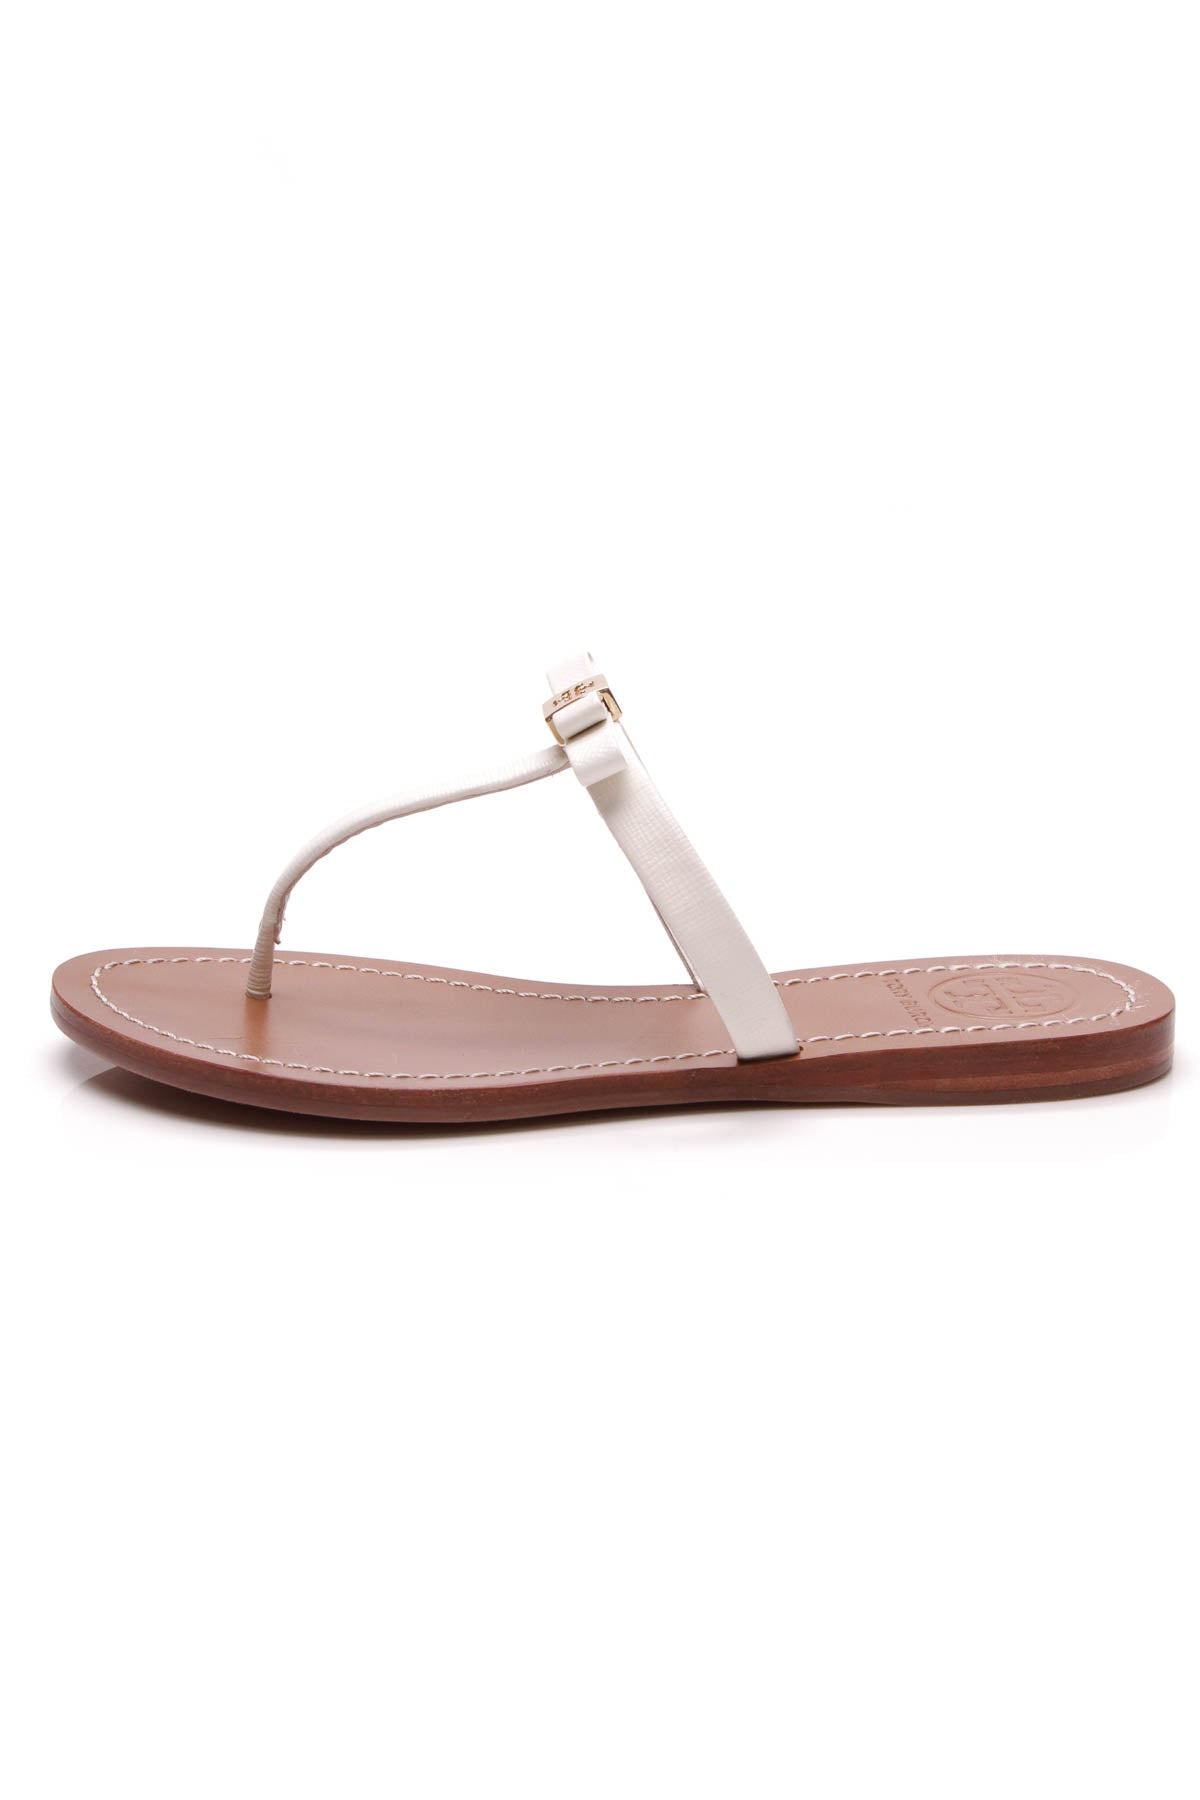 817d0e472a5 Tory Burch Leighanne Bow Thong Sandals - White Size 5 – Couture USA